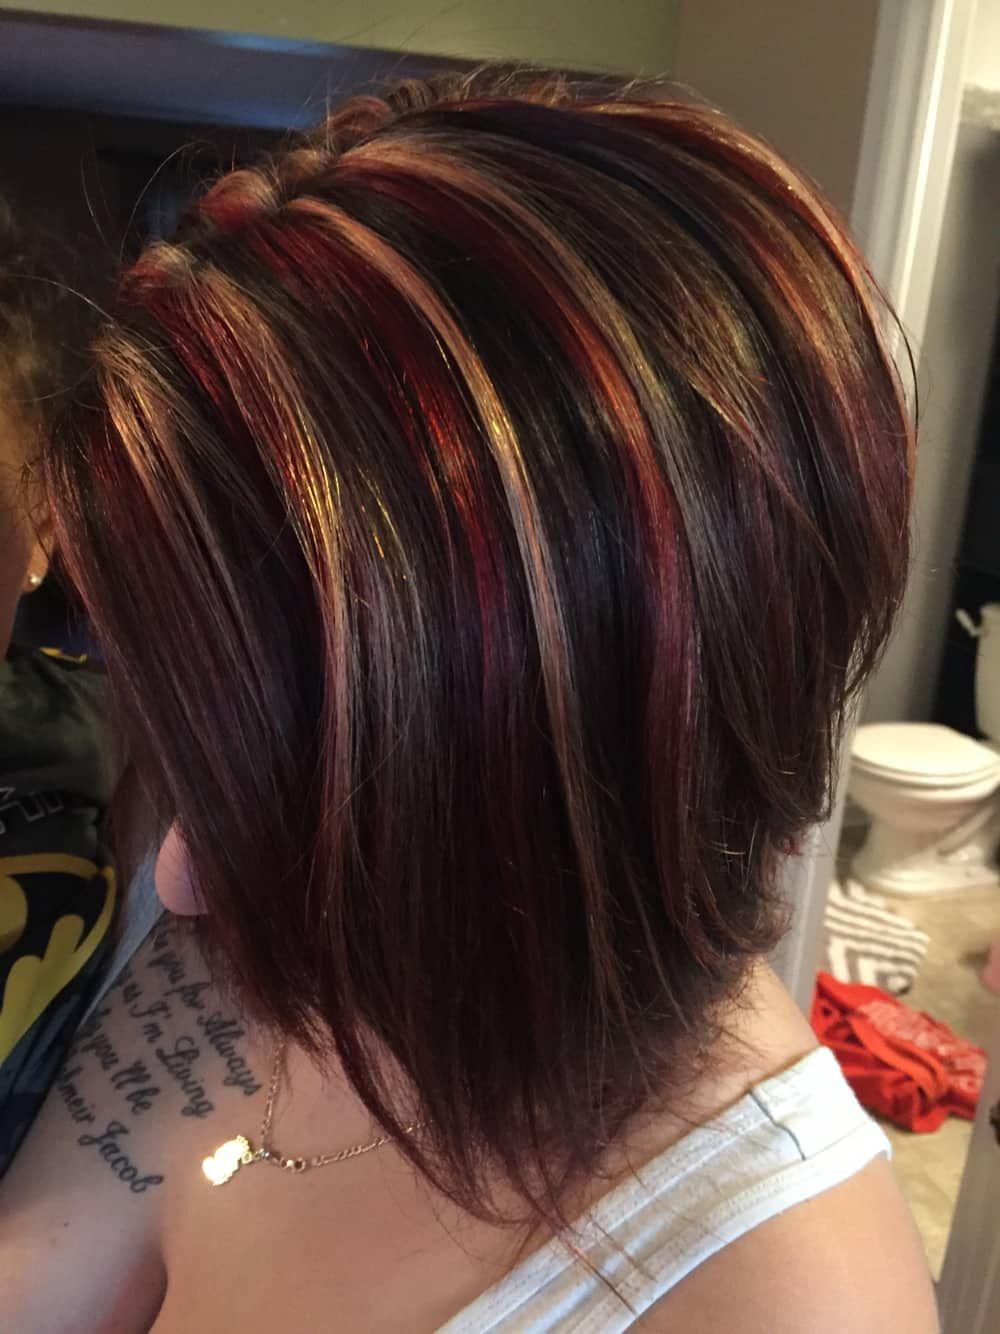 Short haircuts for brown hair with highlights and red lowlights